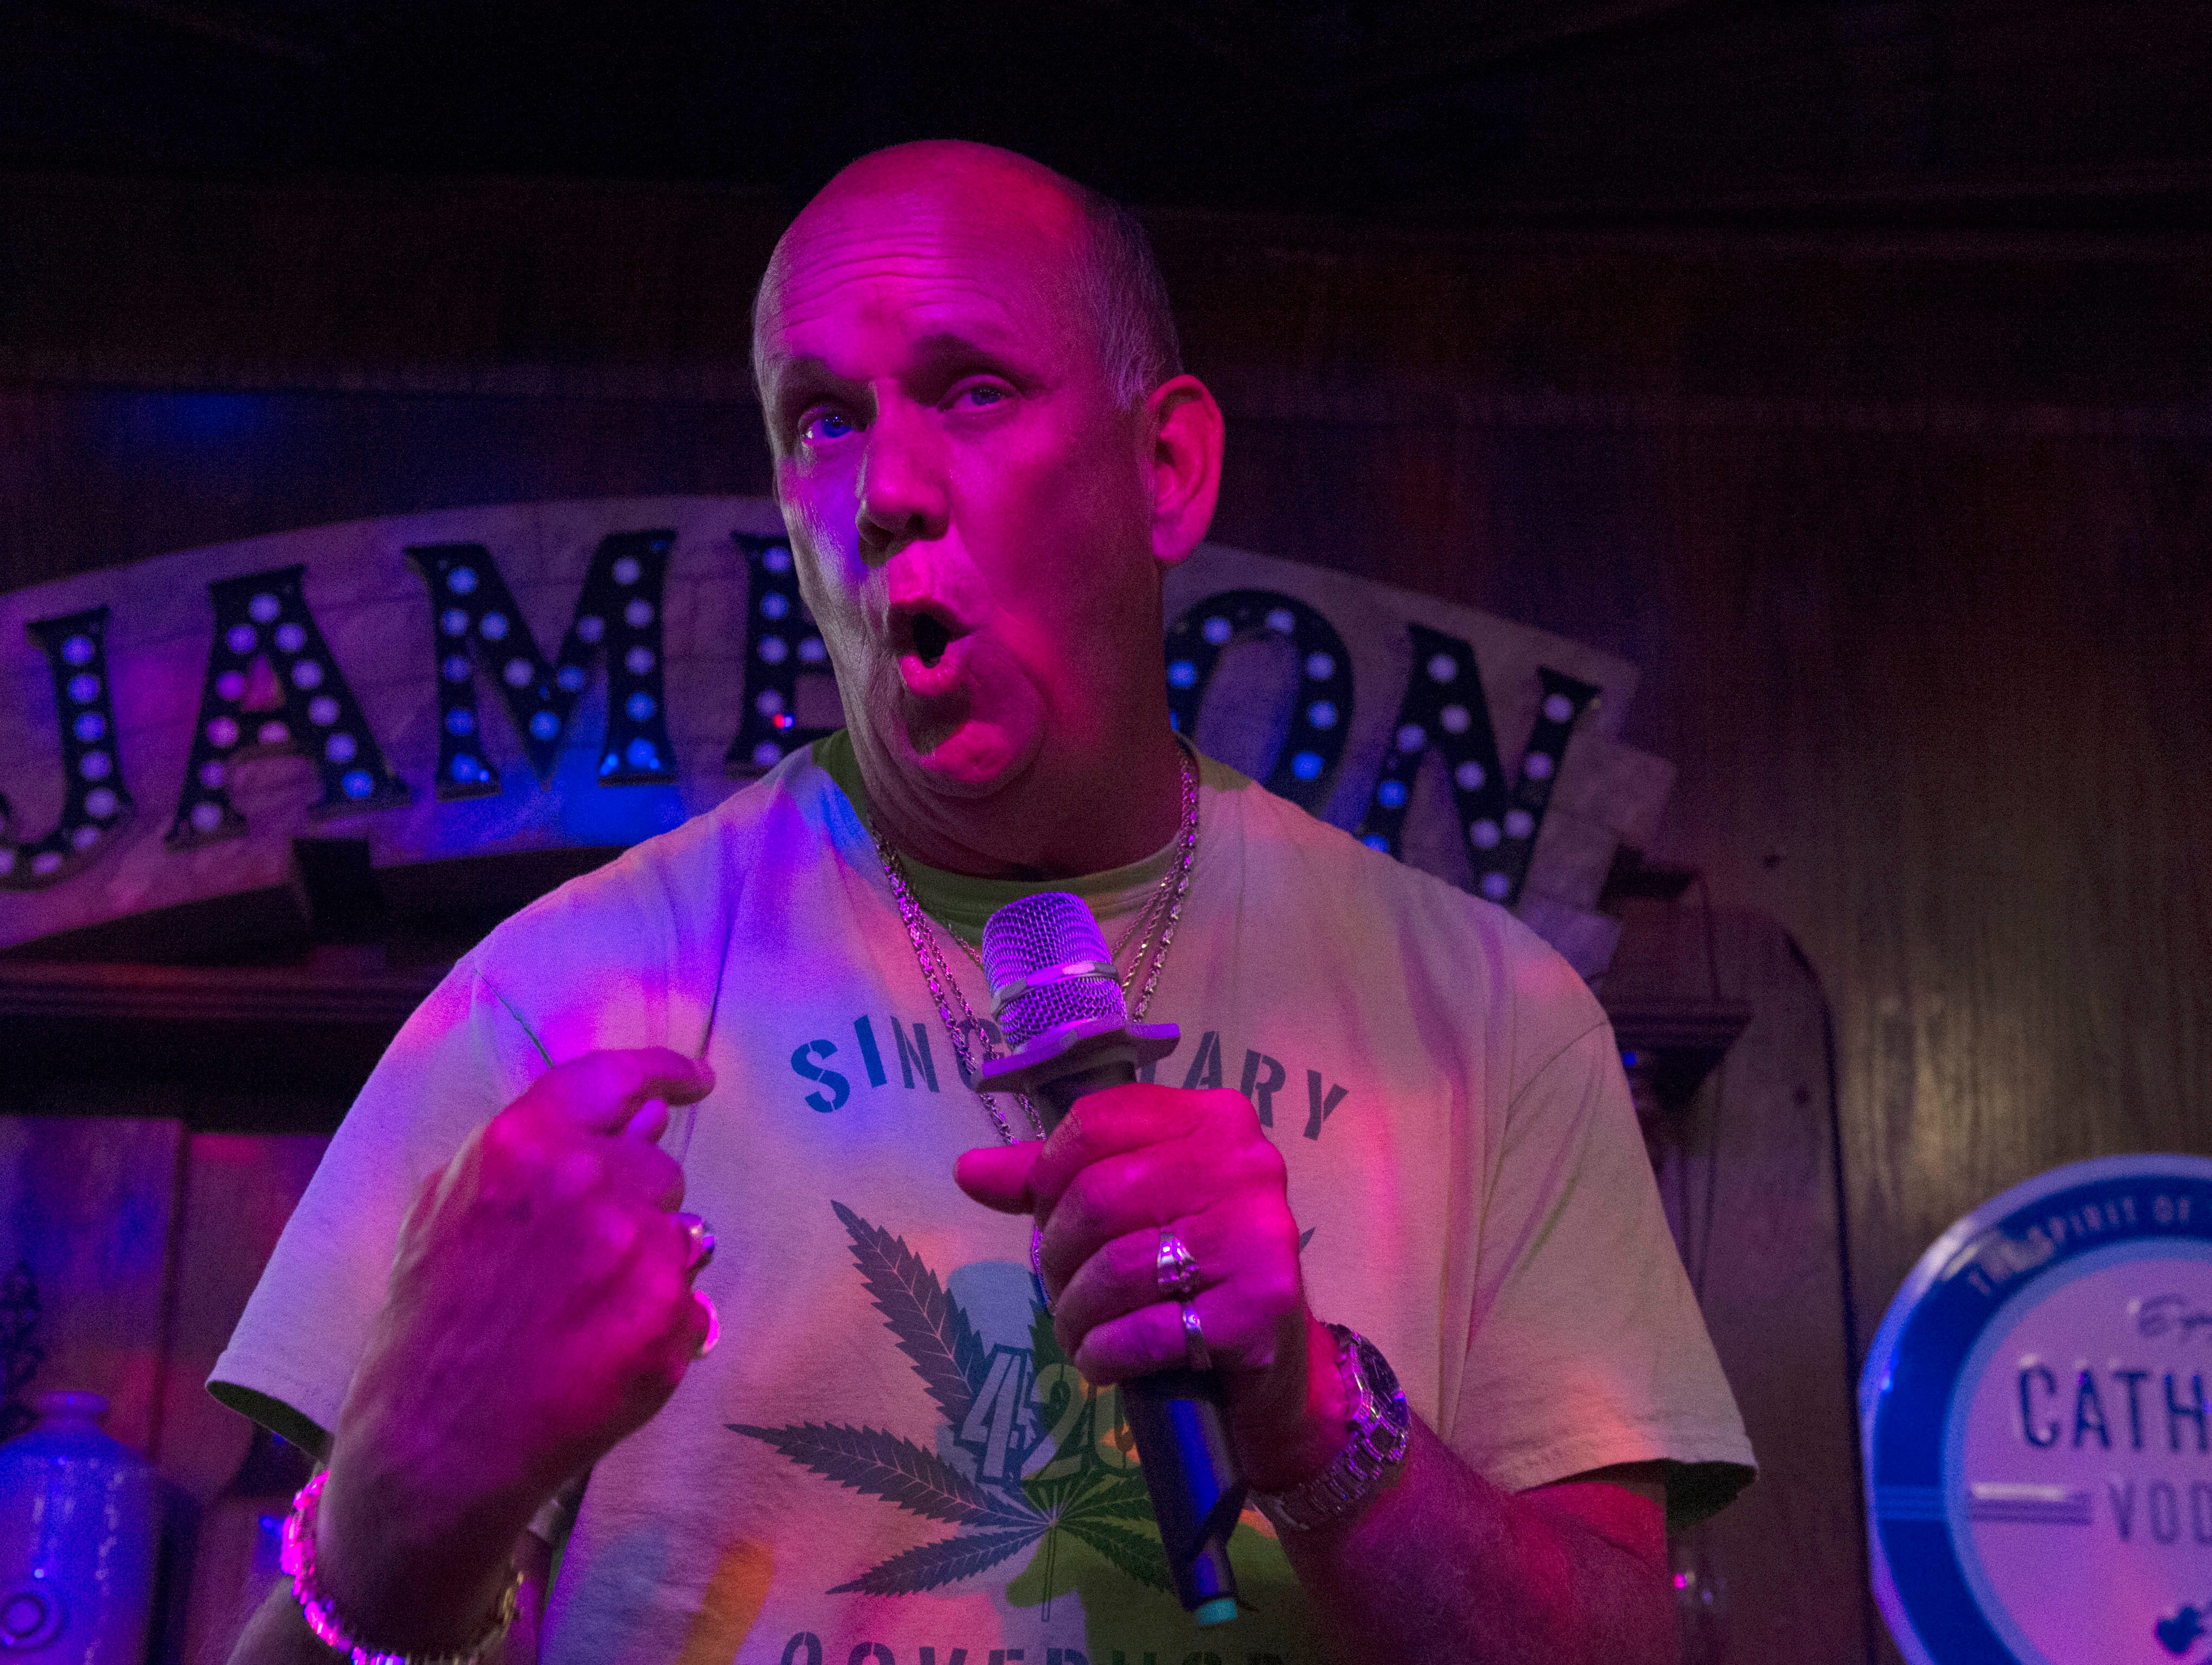 Mississippi 2019 independent gubernatorial candidate David Singletary performs singer Billy Idol's 'Rebel Yell' during karaoke night at Fenian's Pub in the Belhaven Heights neighborhood of Jackson, Miss. on Monday night. Singletary's campaign platform is primarily based around legalization of Marijuana in Mississippi. Monday, April 30, 2019.